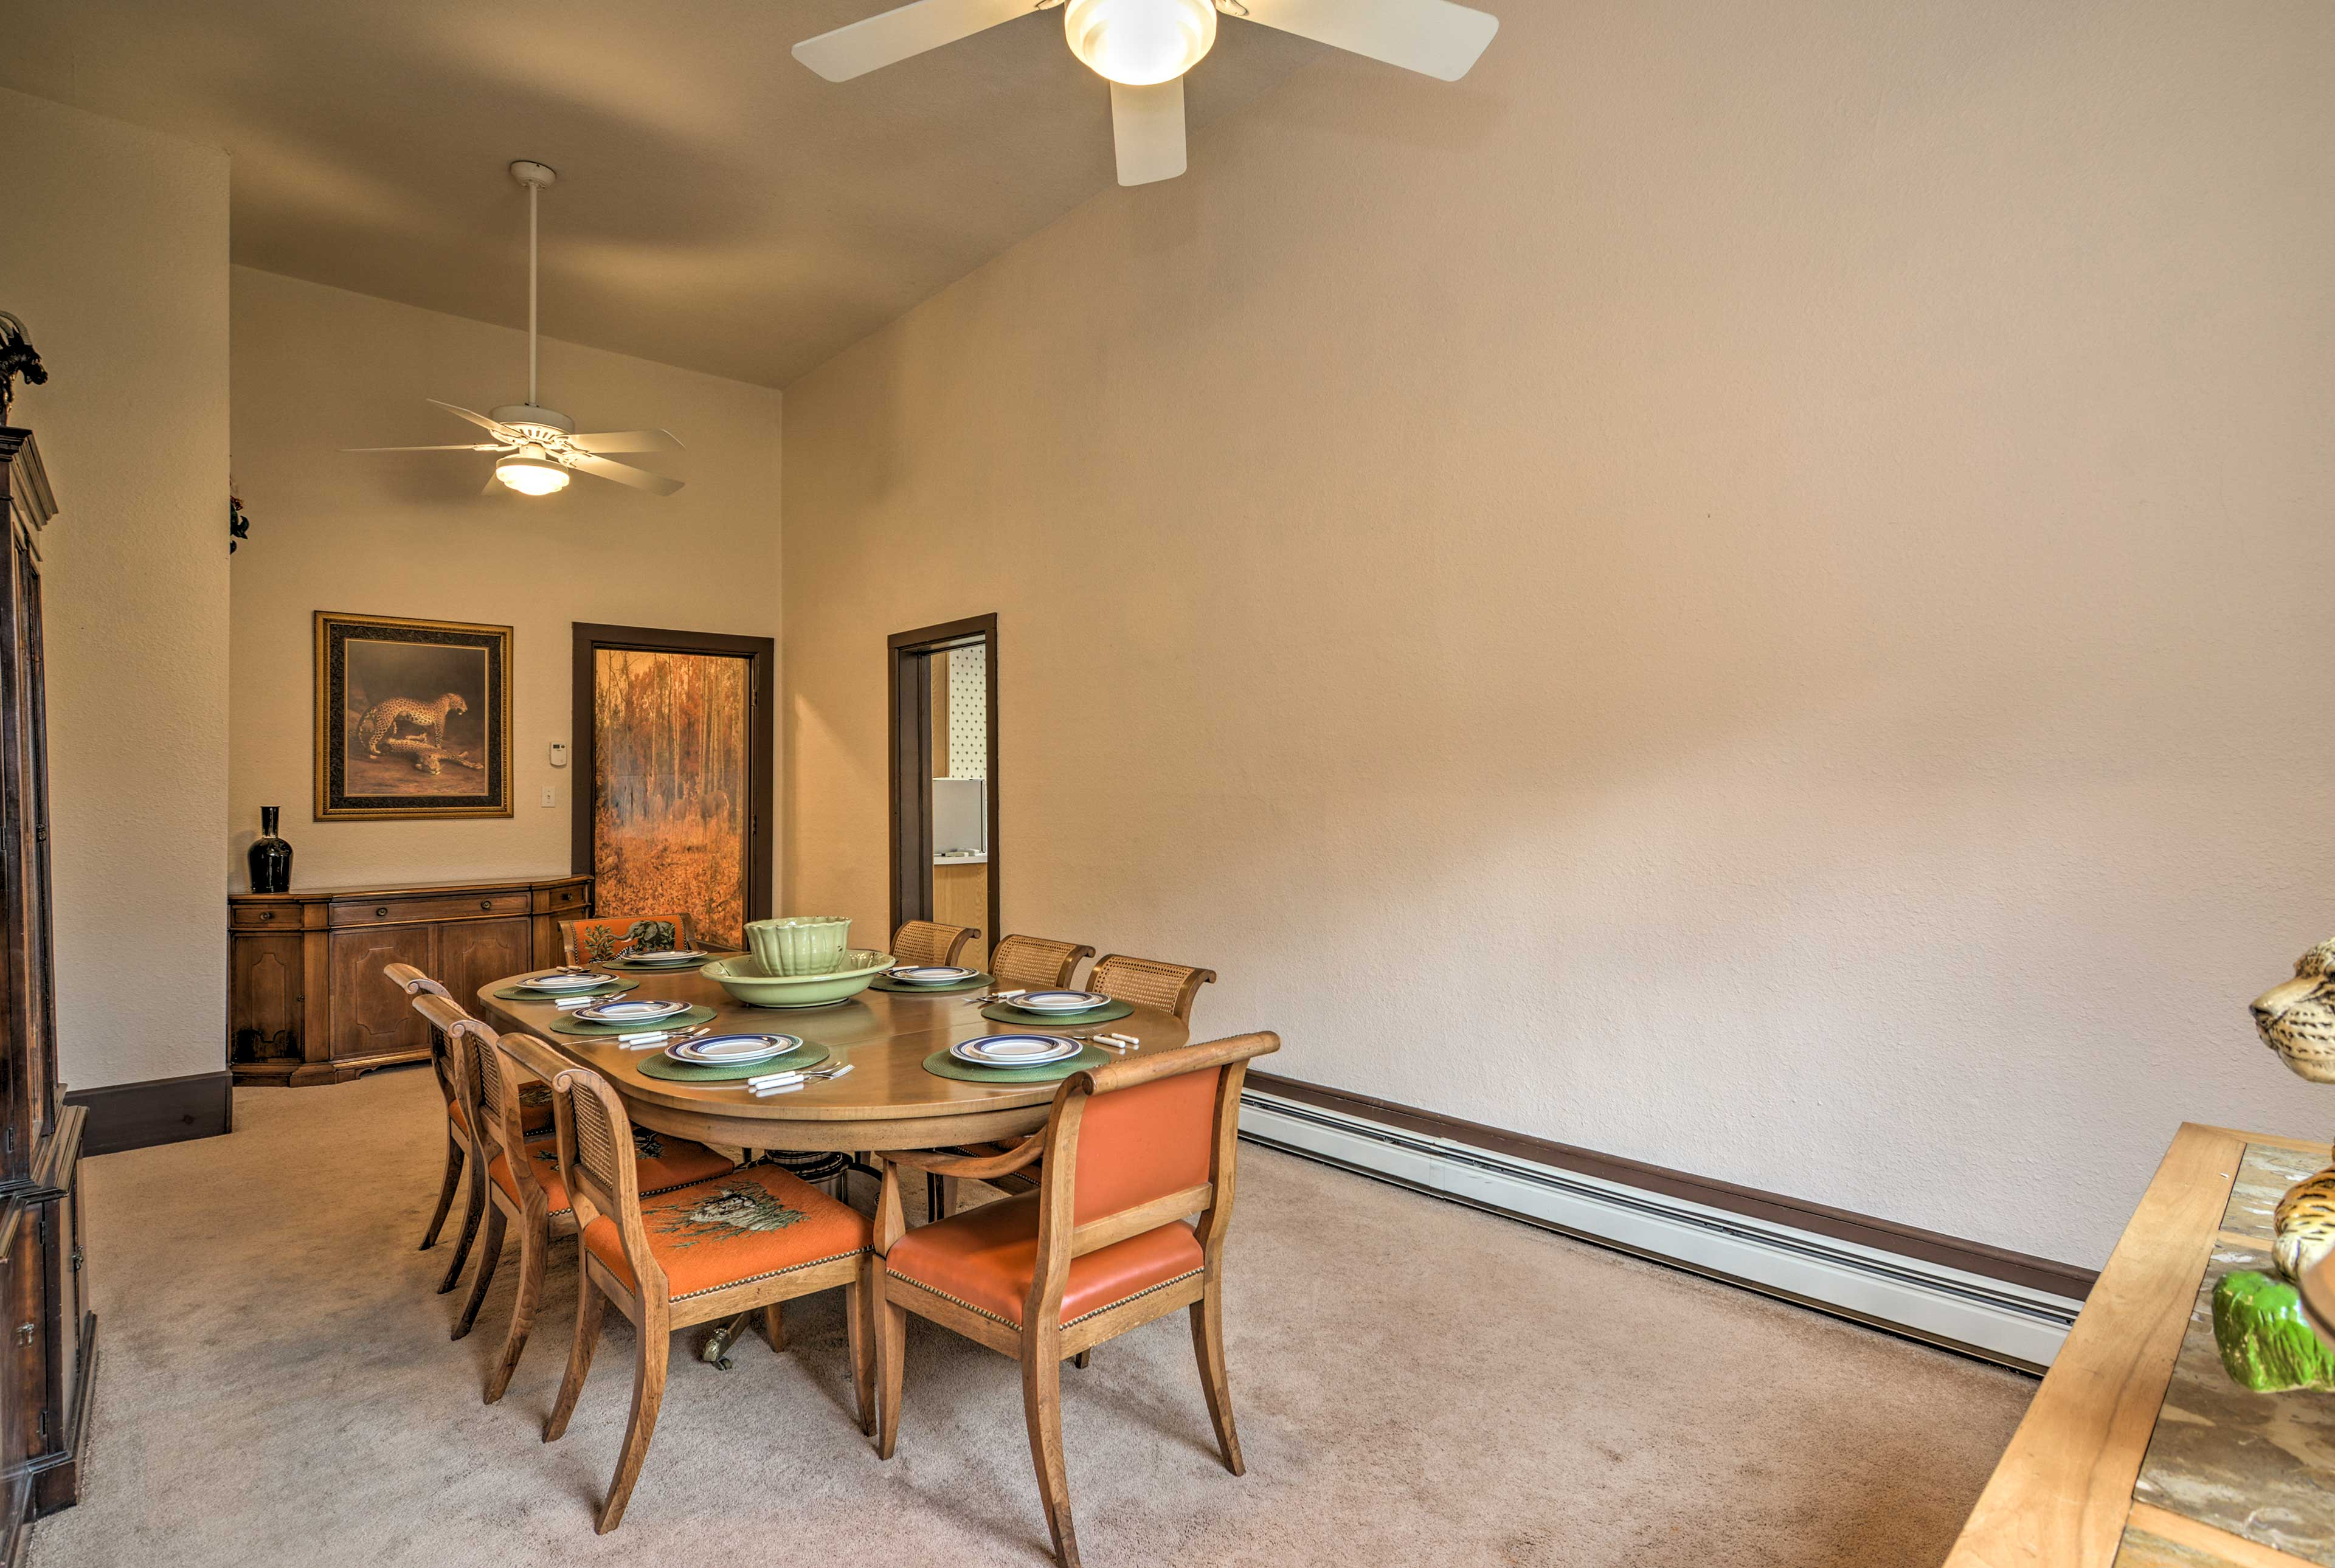 Gather around the dining room table to enjoy your feasts.